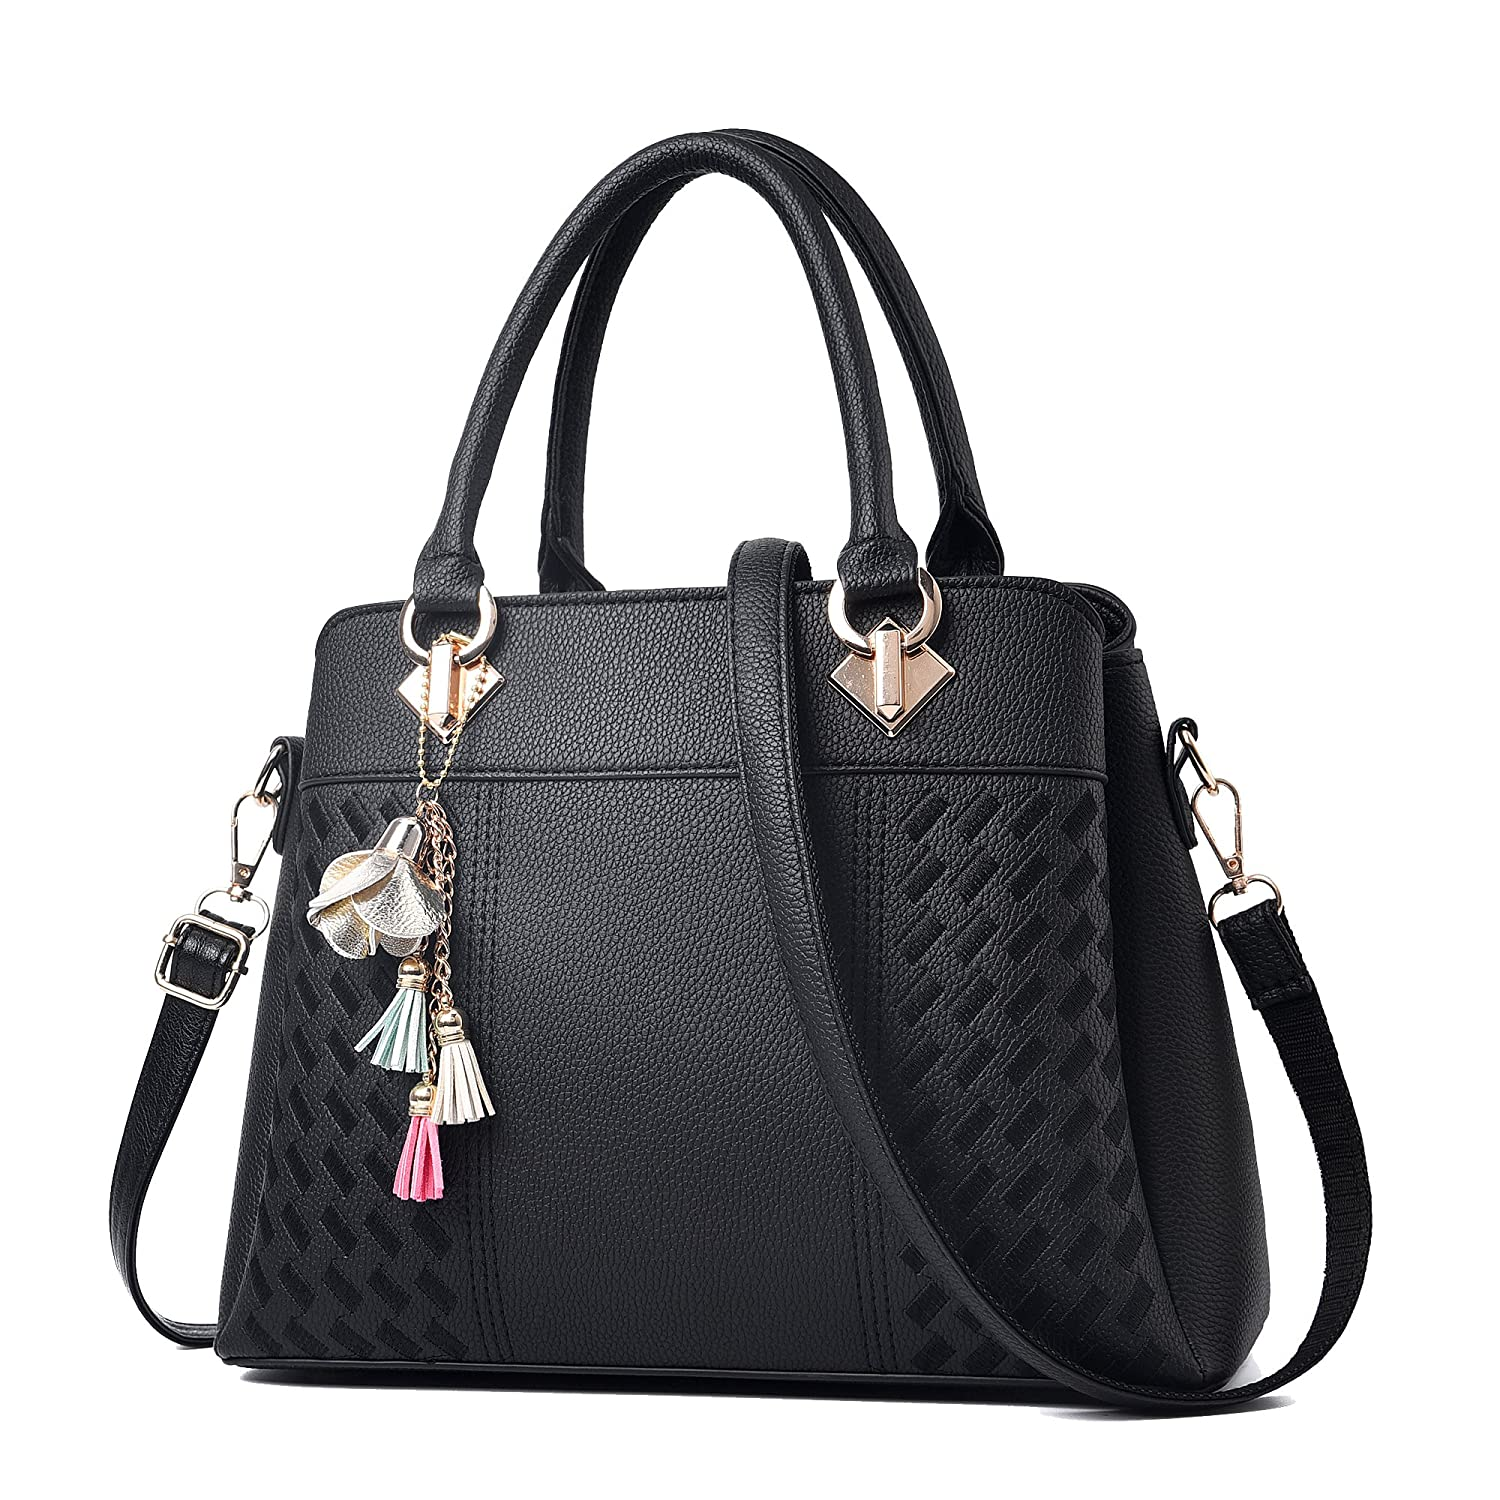 a80cf7efb2f3 Amazon.com  Womens Purses and Handbags Ladies Designer Satchel Tote Bag  Shoulder Bags